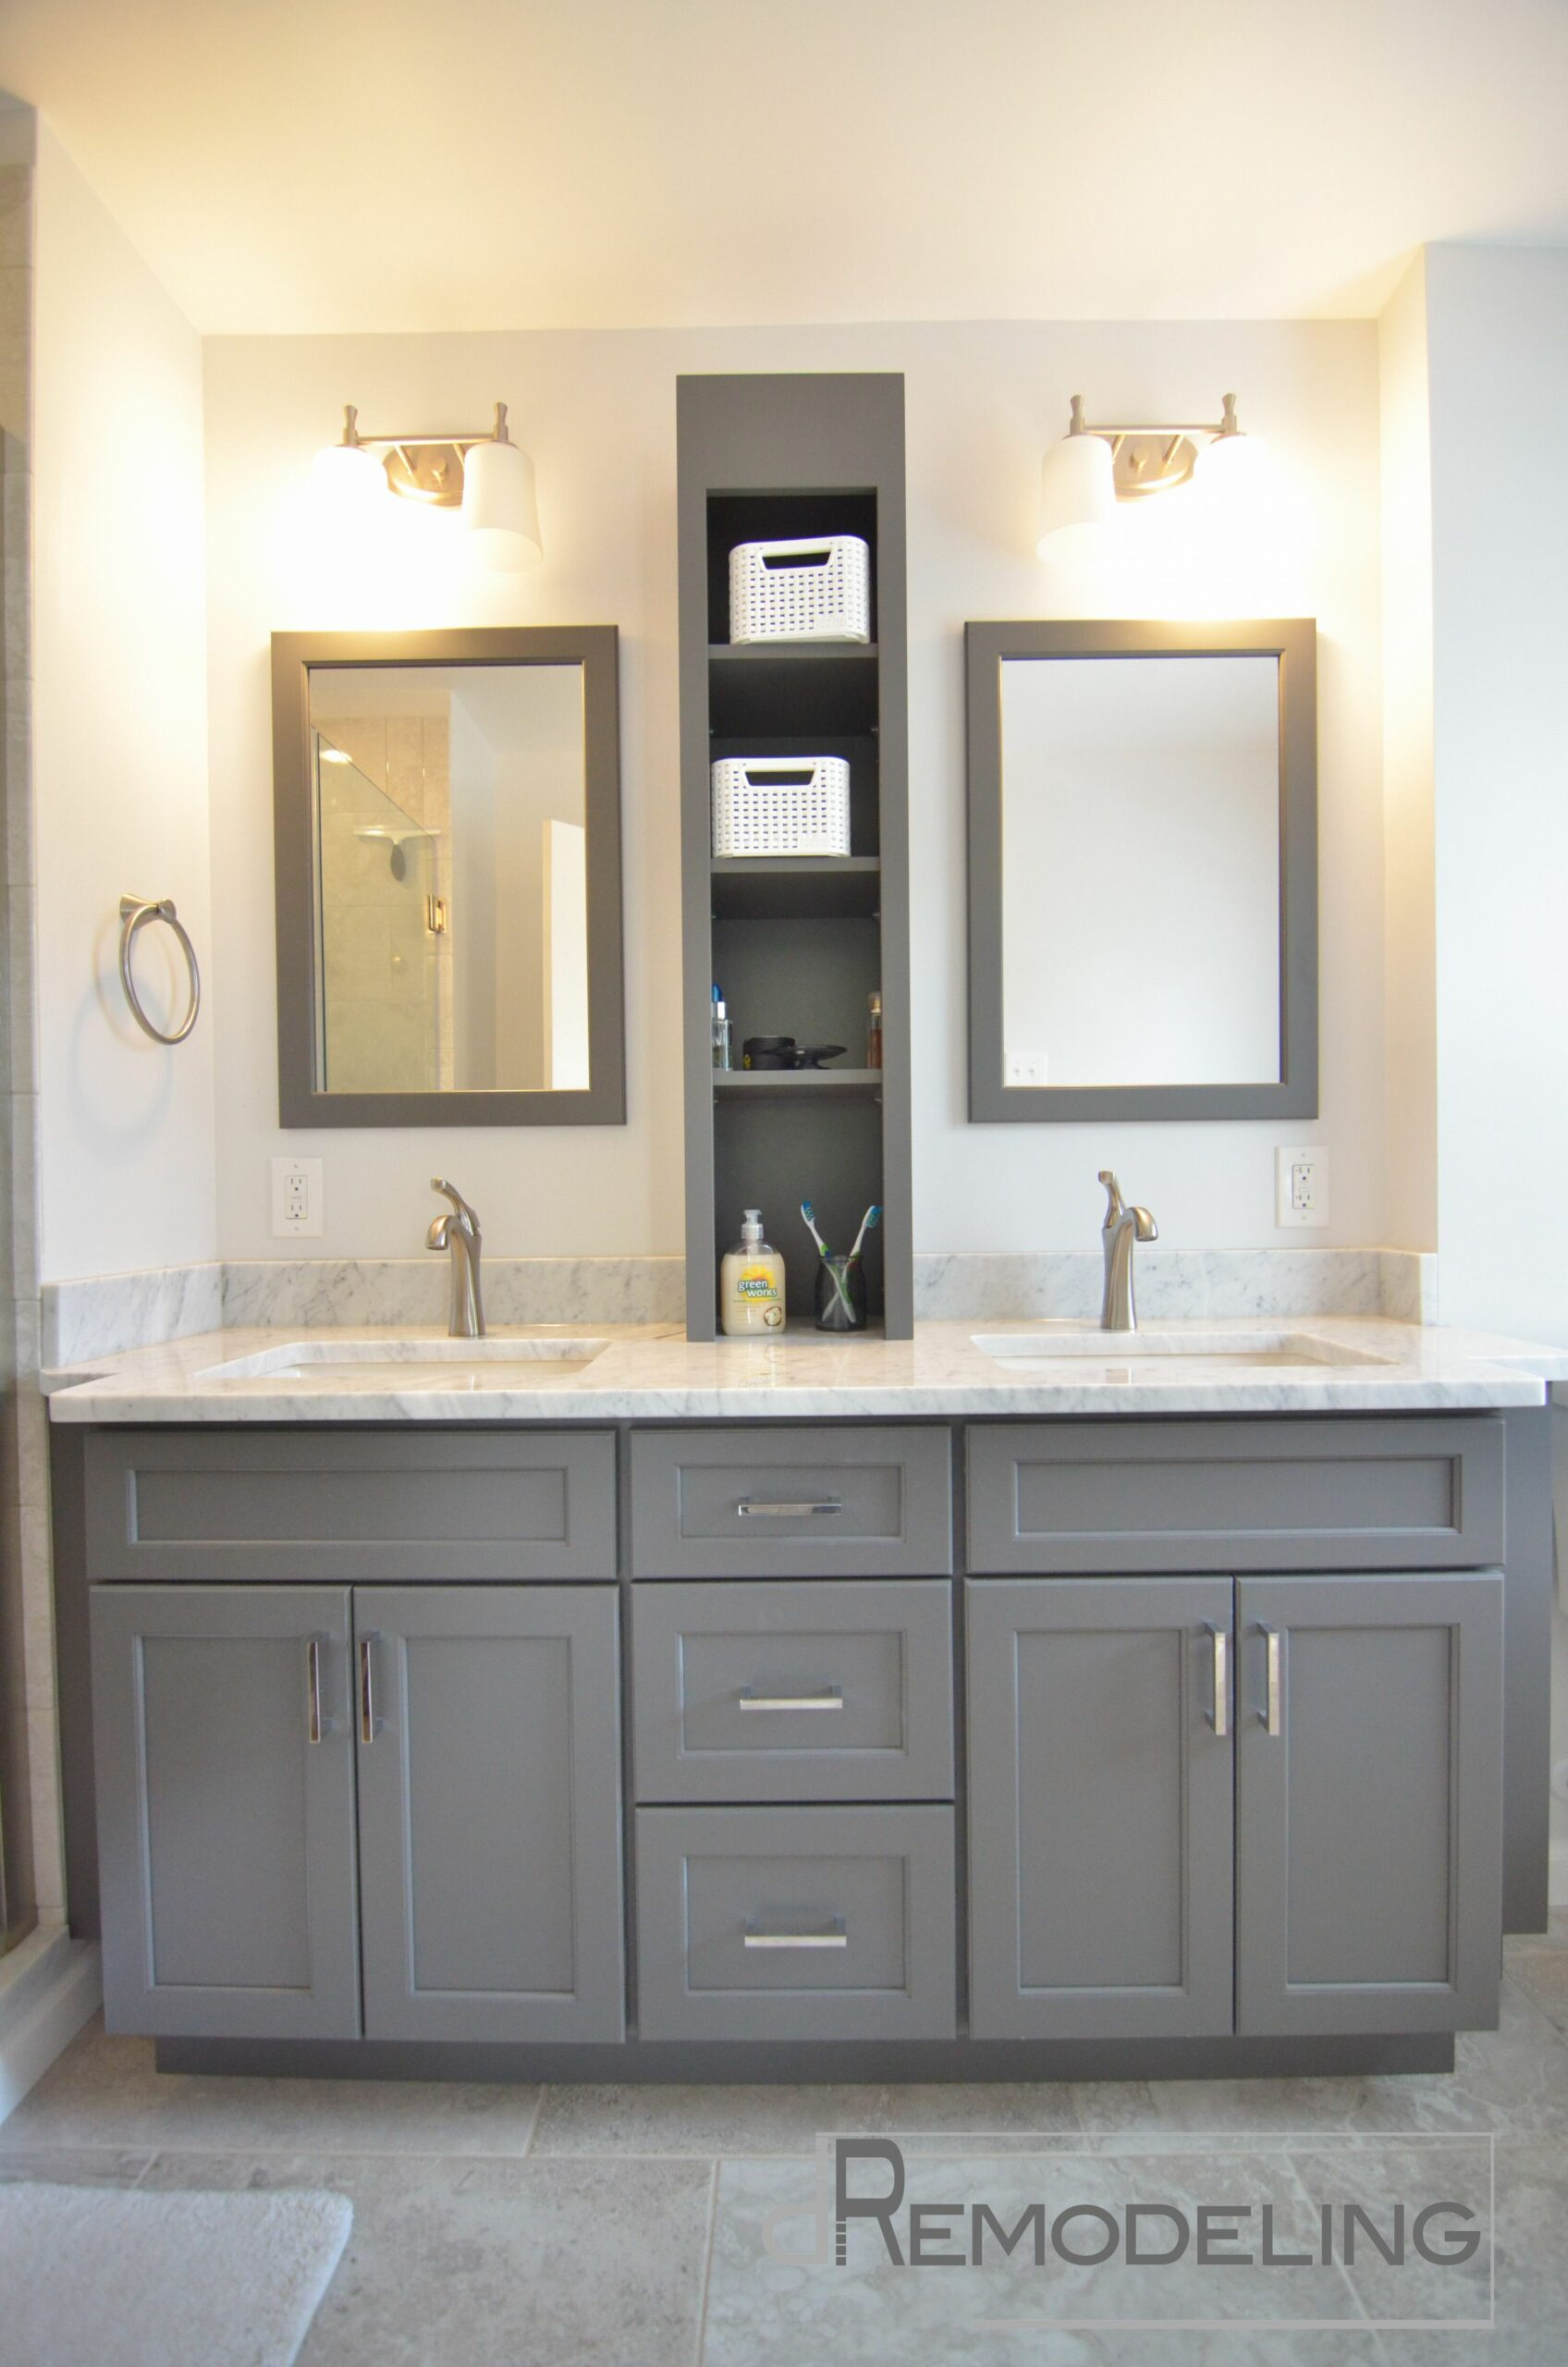 Why You Should Remodel Your Bathroom | Small space bathroom ...